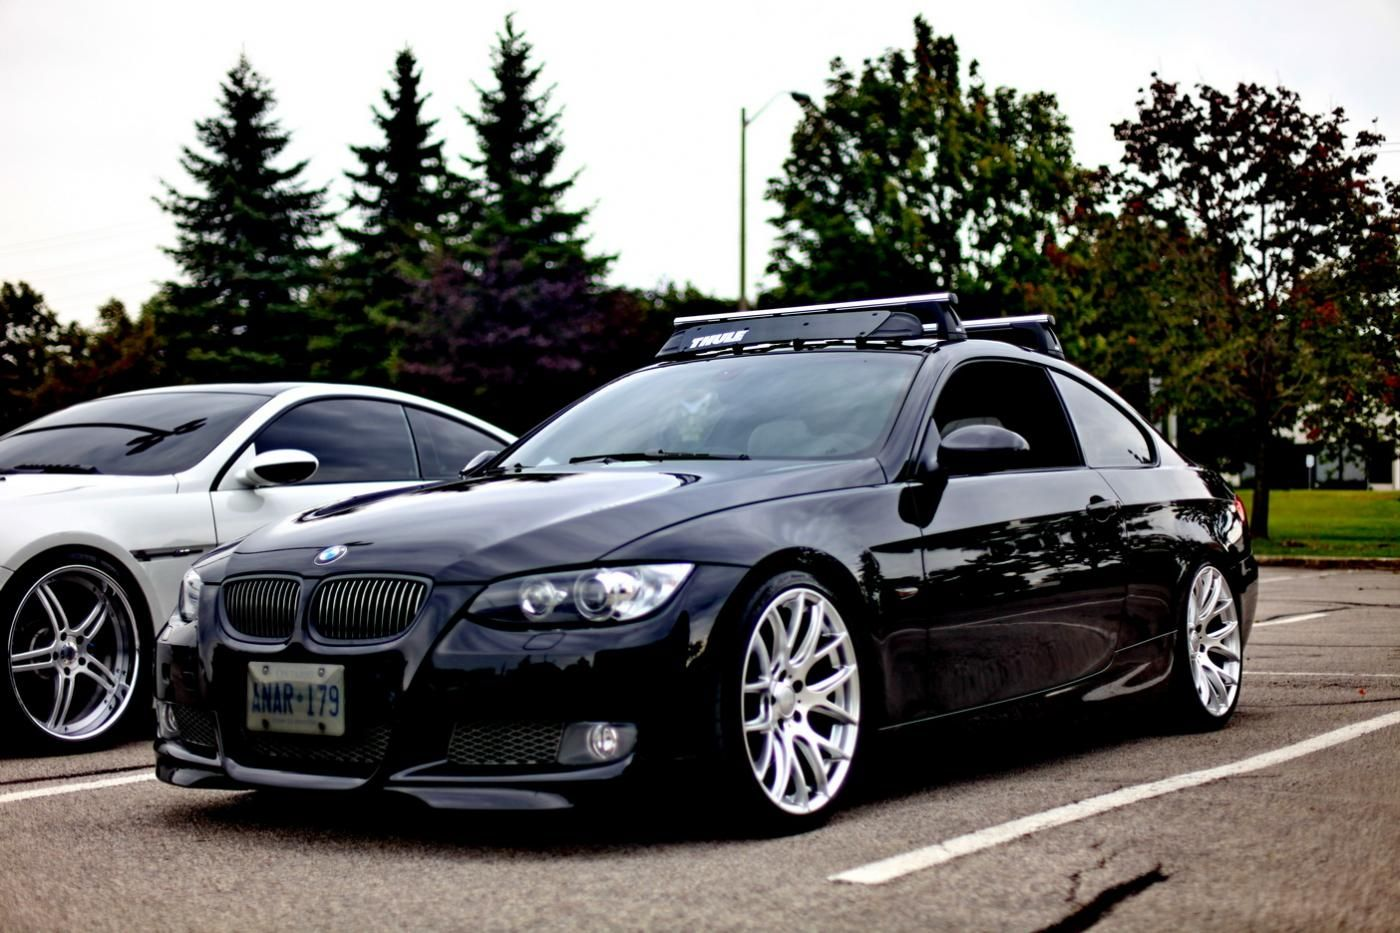 Details About Fits For Bmw X5 X5m E70 2007 2013 Bike Bicycle Rack Roof Mounted Bike Carrier